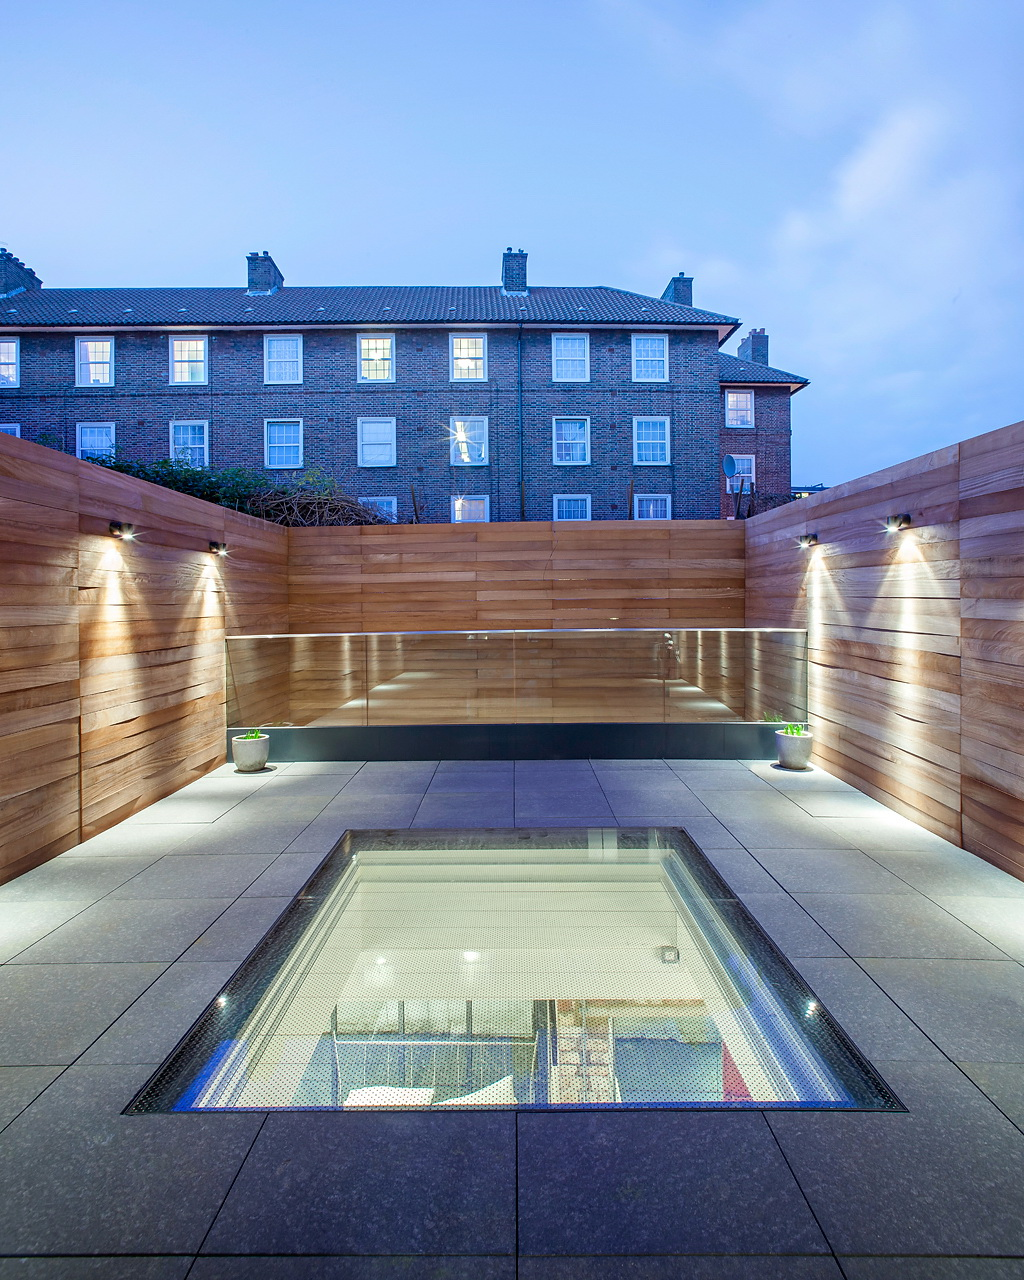 Chris-Dyson-Architects-Shoreditch-Warehouse-Conversion-13